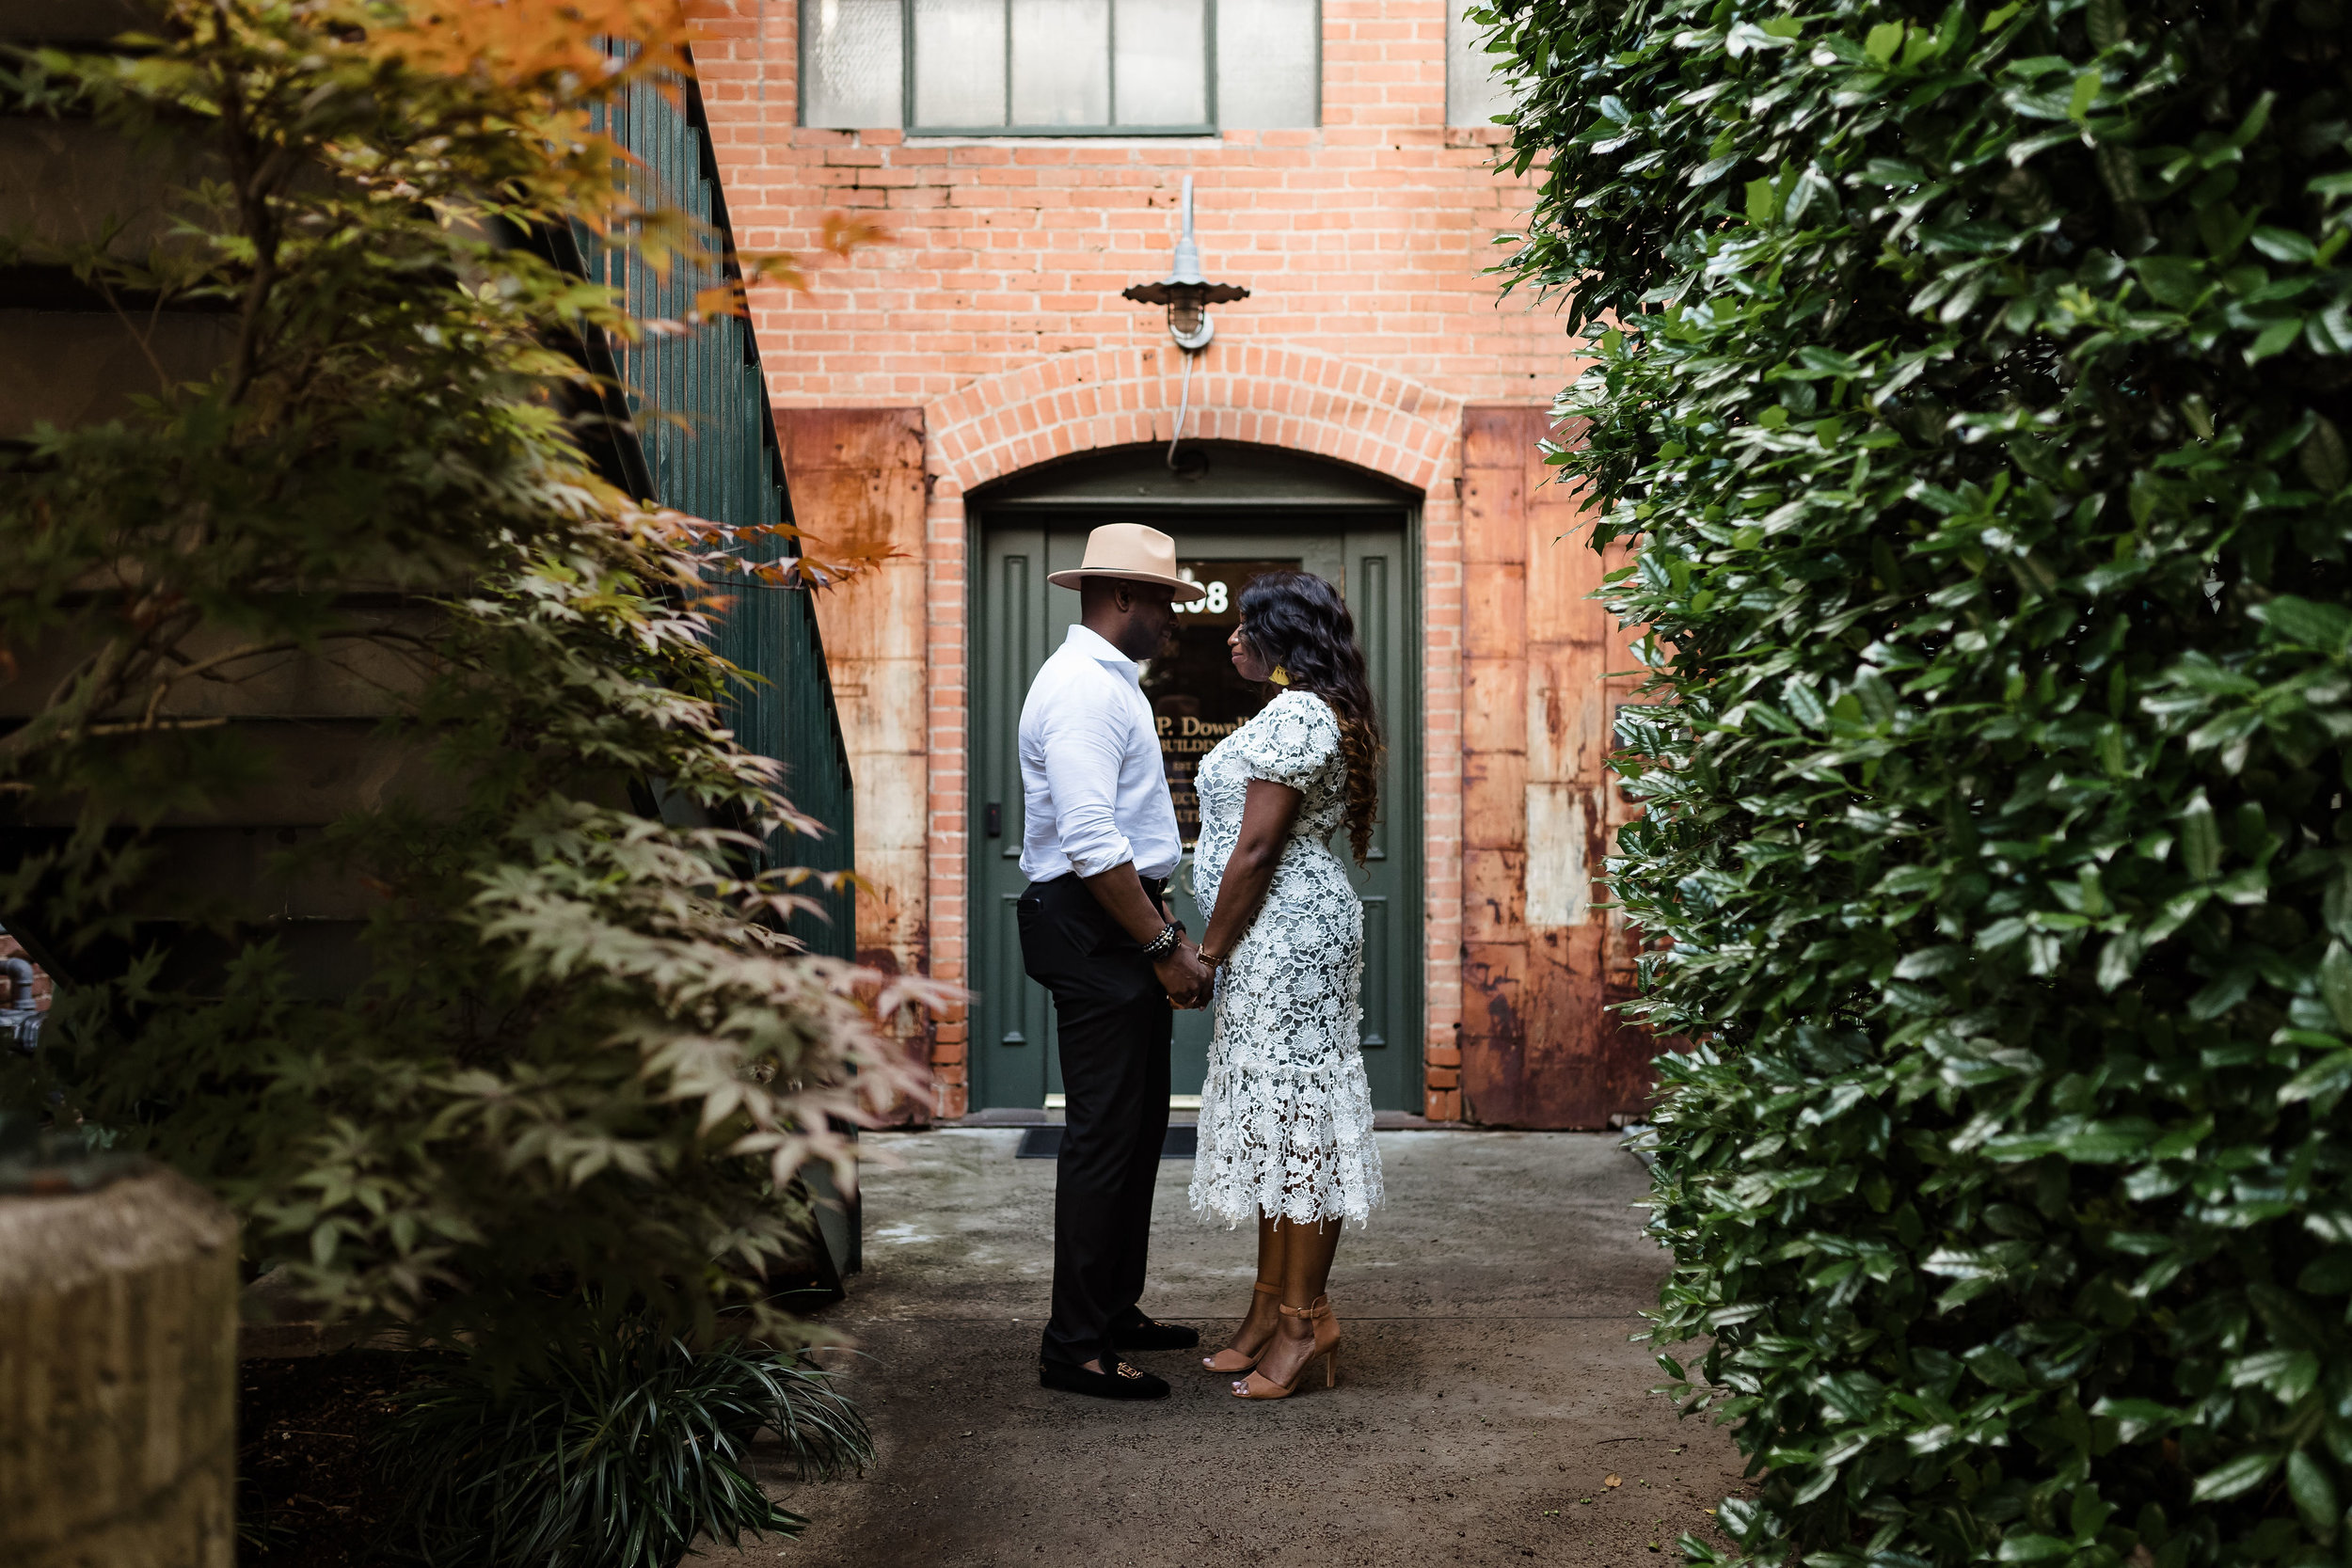 marrica-evans-photography-anniversary-party-dallas, tx